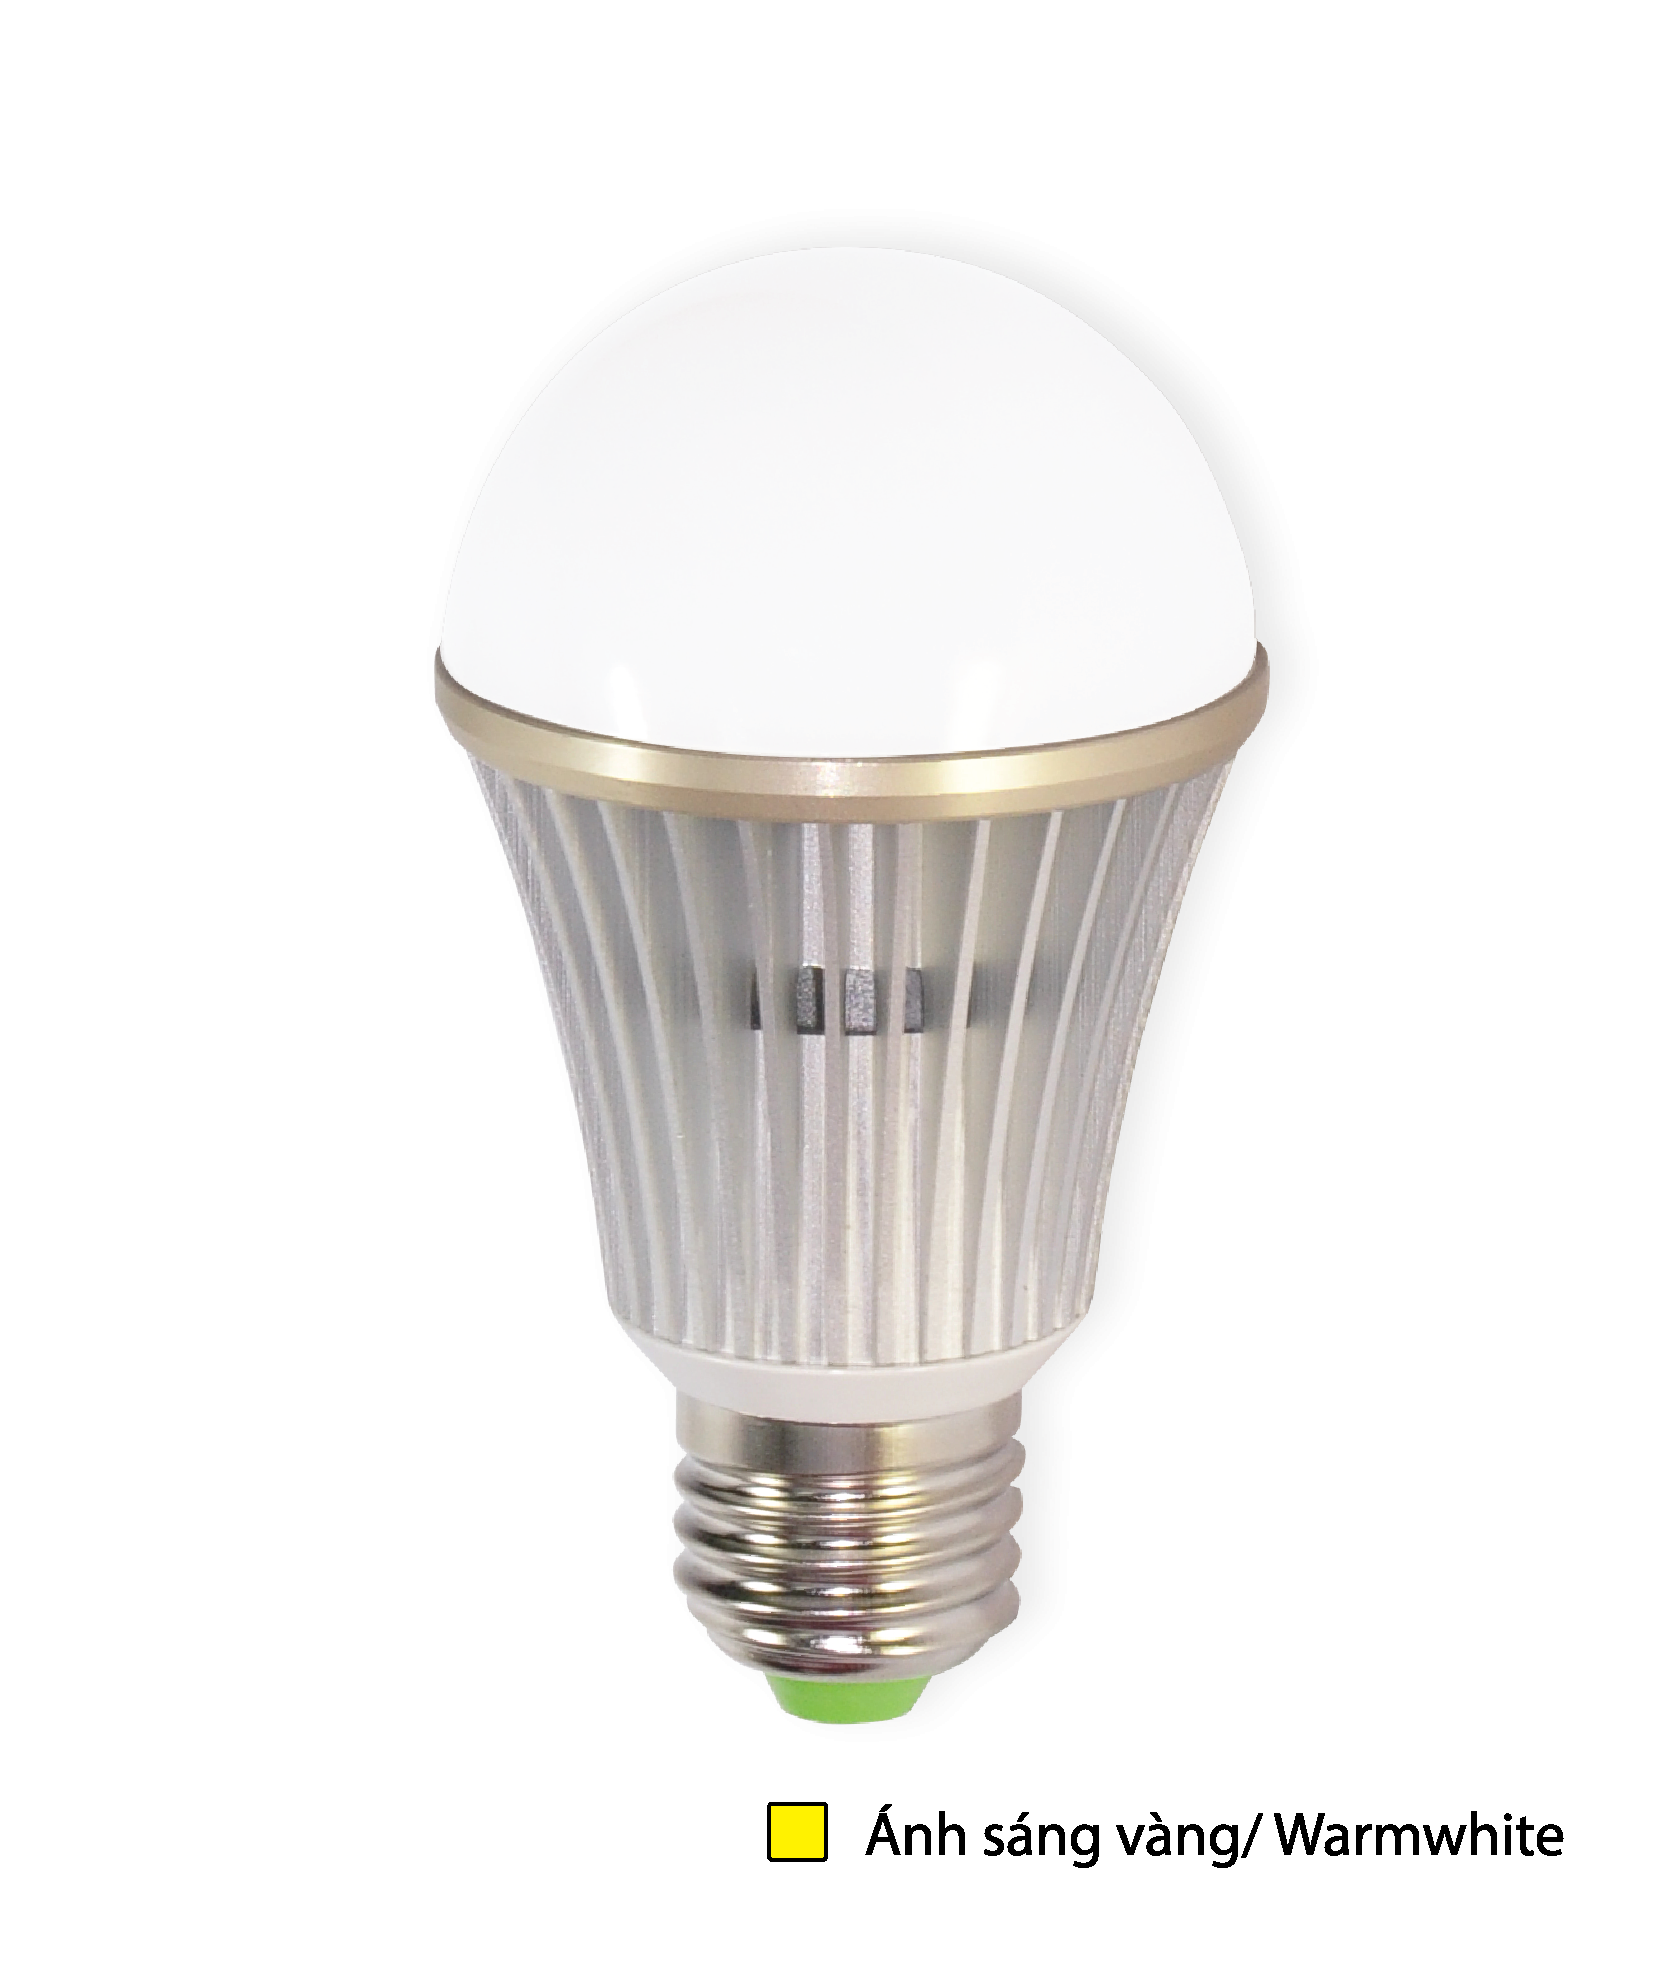 LED Bulb 5W warmwhite LEDBU02 05727-123456789